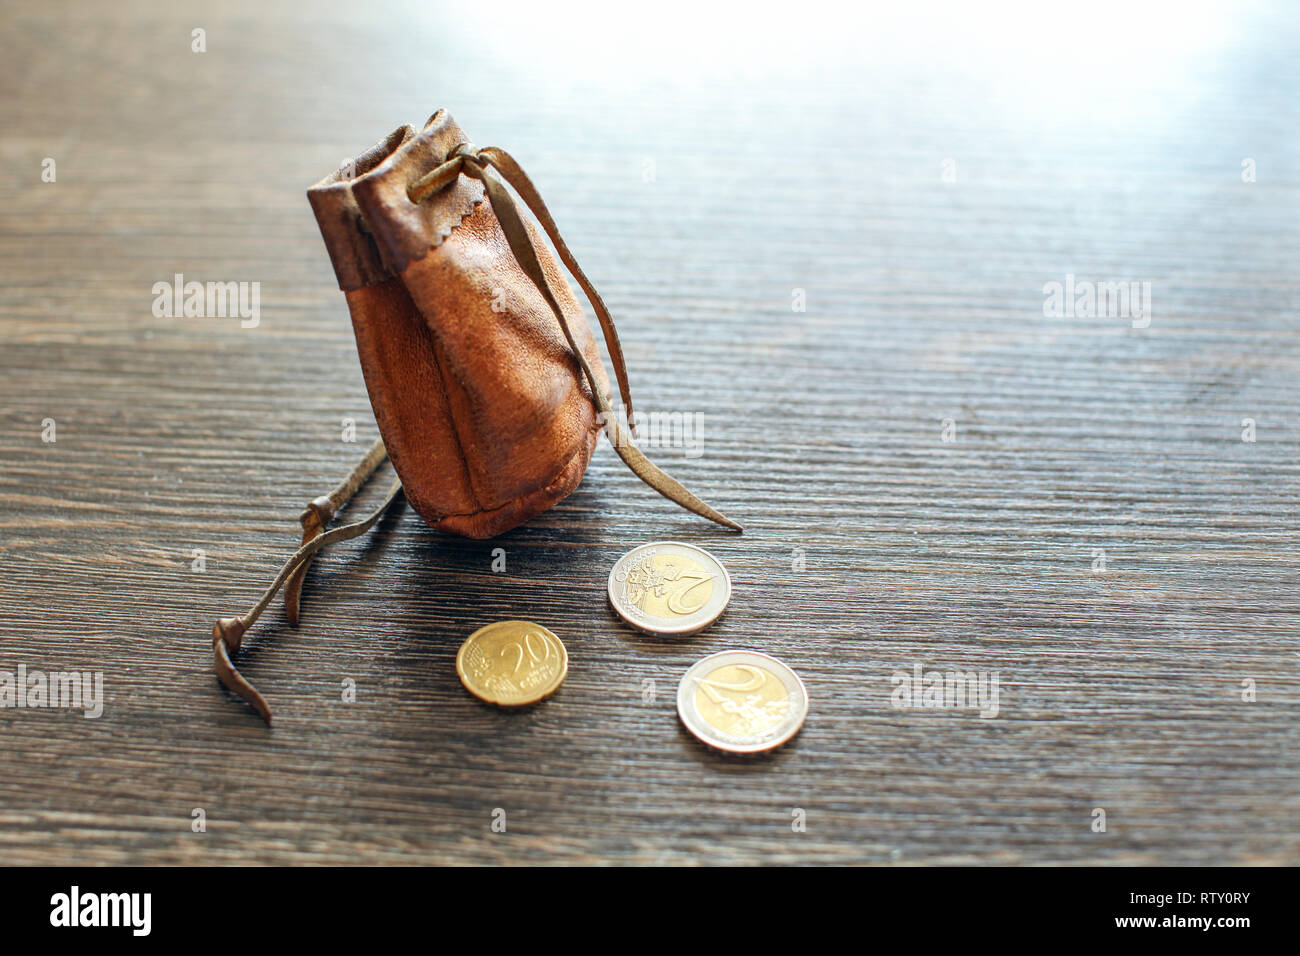 Vintage leather pouch on wooden desk, with euro coins next to it - Stock Image